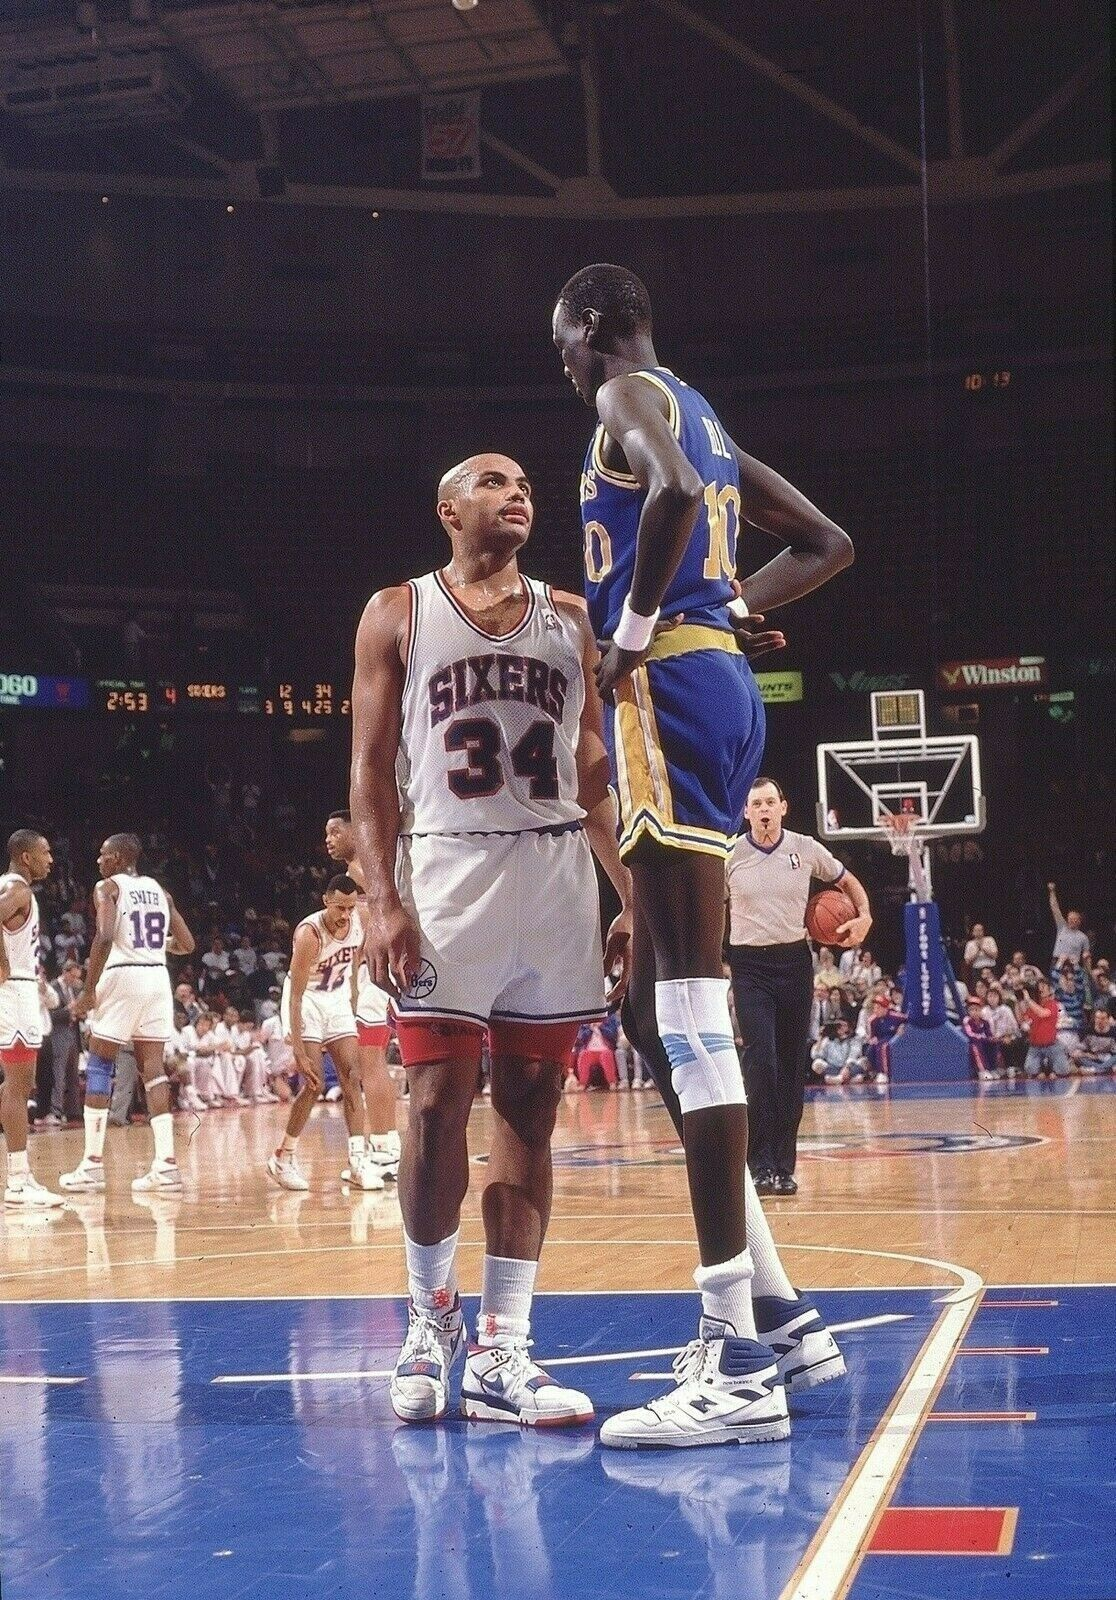 Primary image for Manute Bol Charles Barkley SSPF Vintage 8X10 Color Basketball Memorabilia Photo